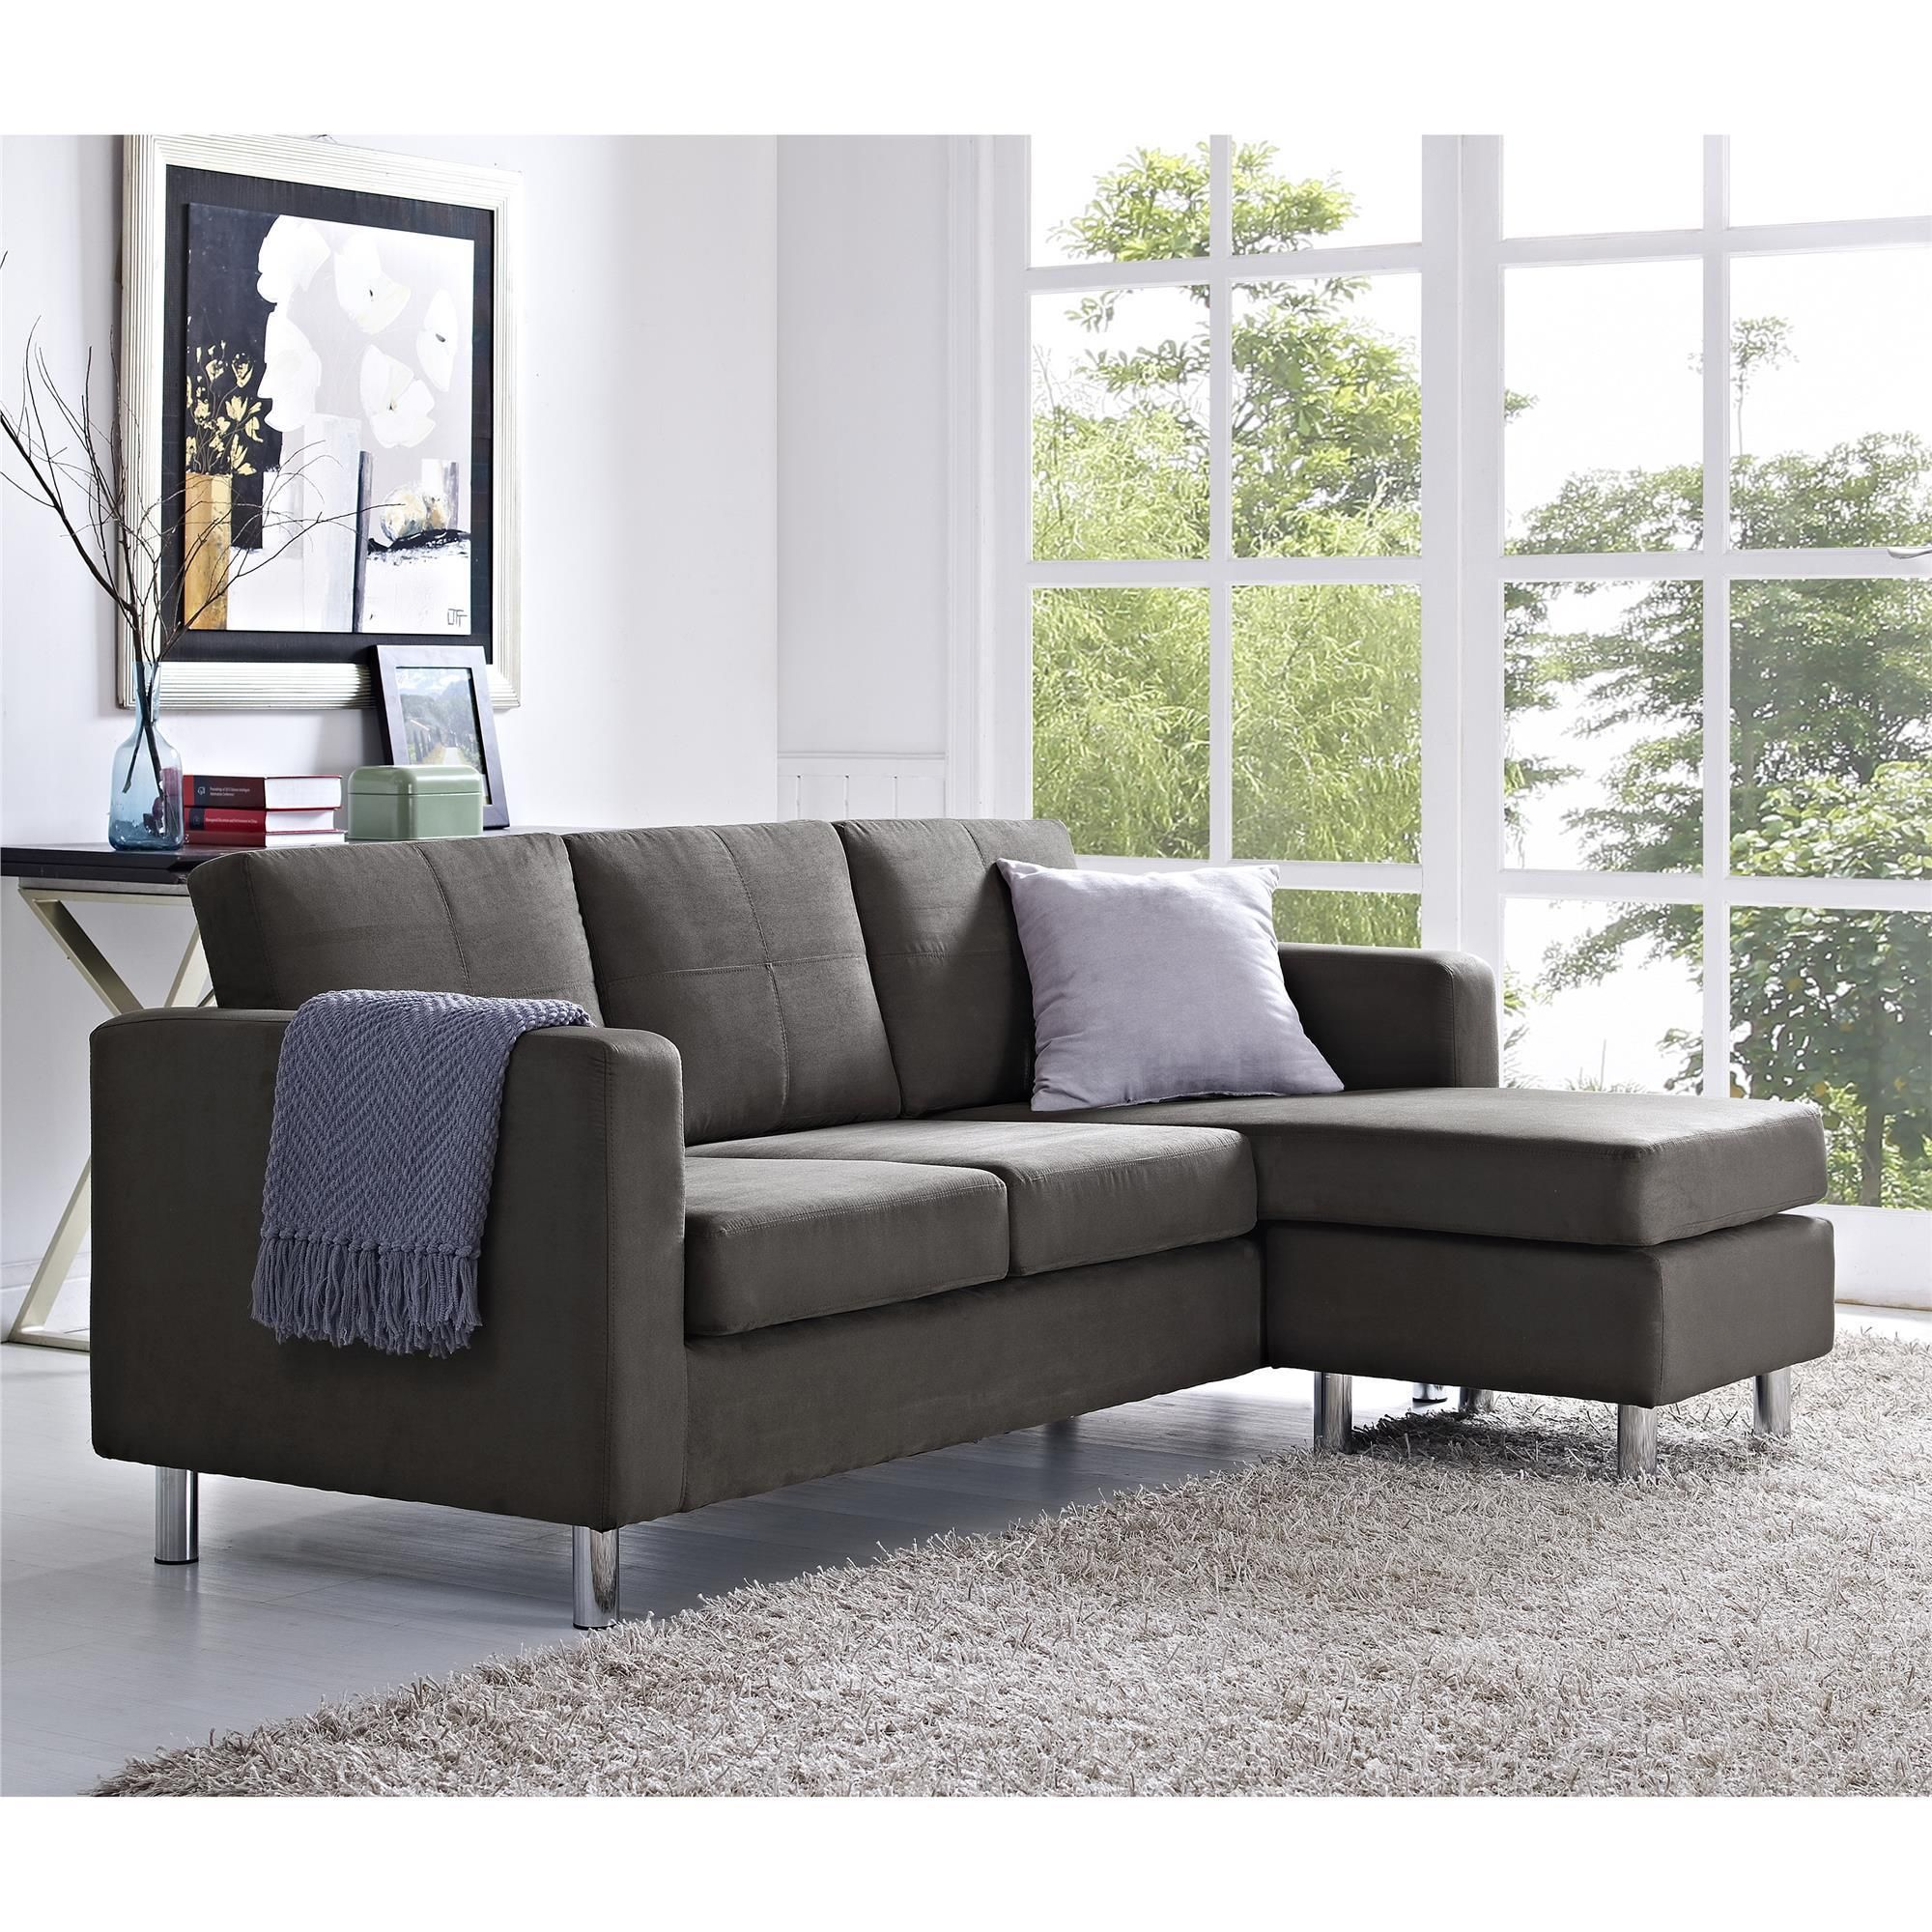 Have comfortable and stylish seating available with the Small Spaces